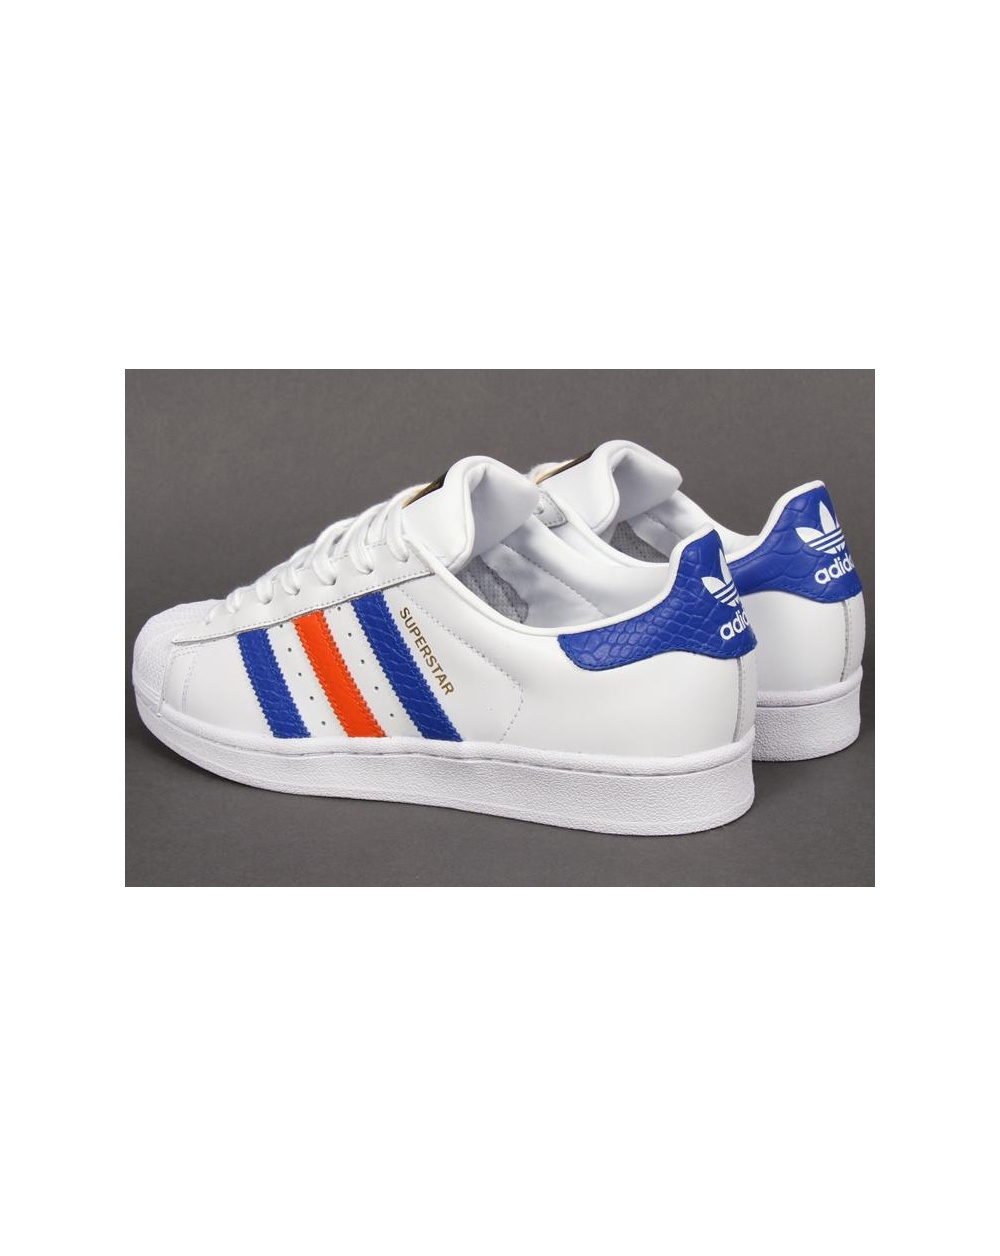 Buy adidas superstar primeknit kids Orange >off34%)